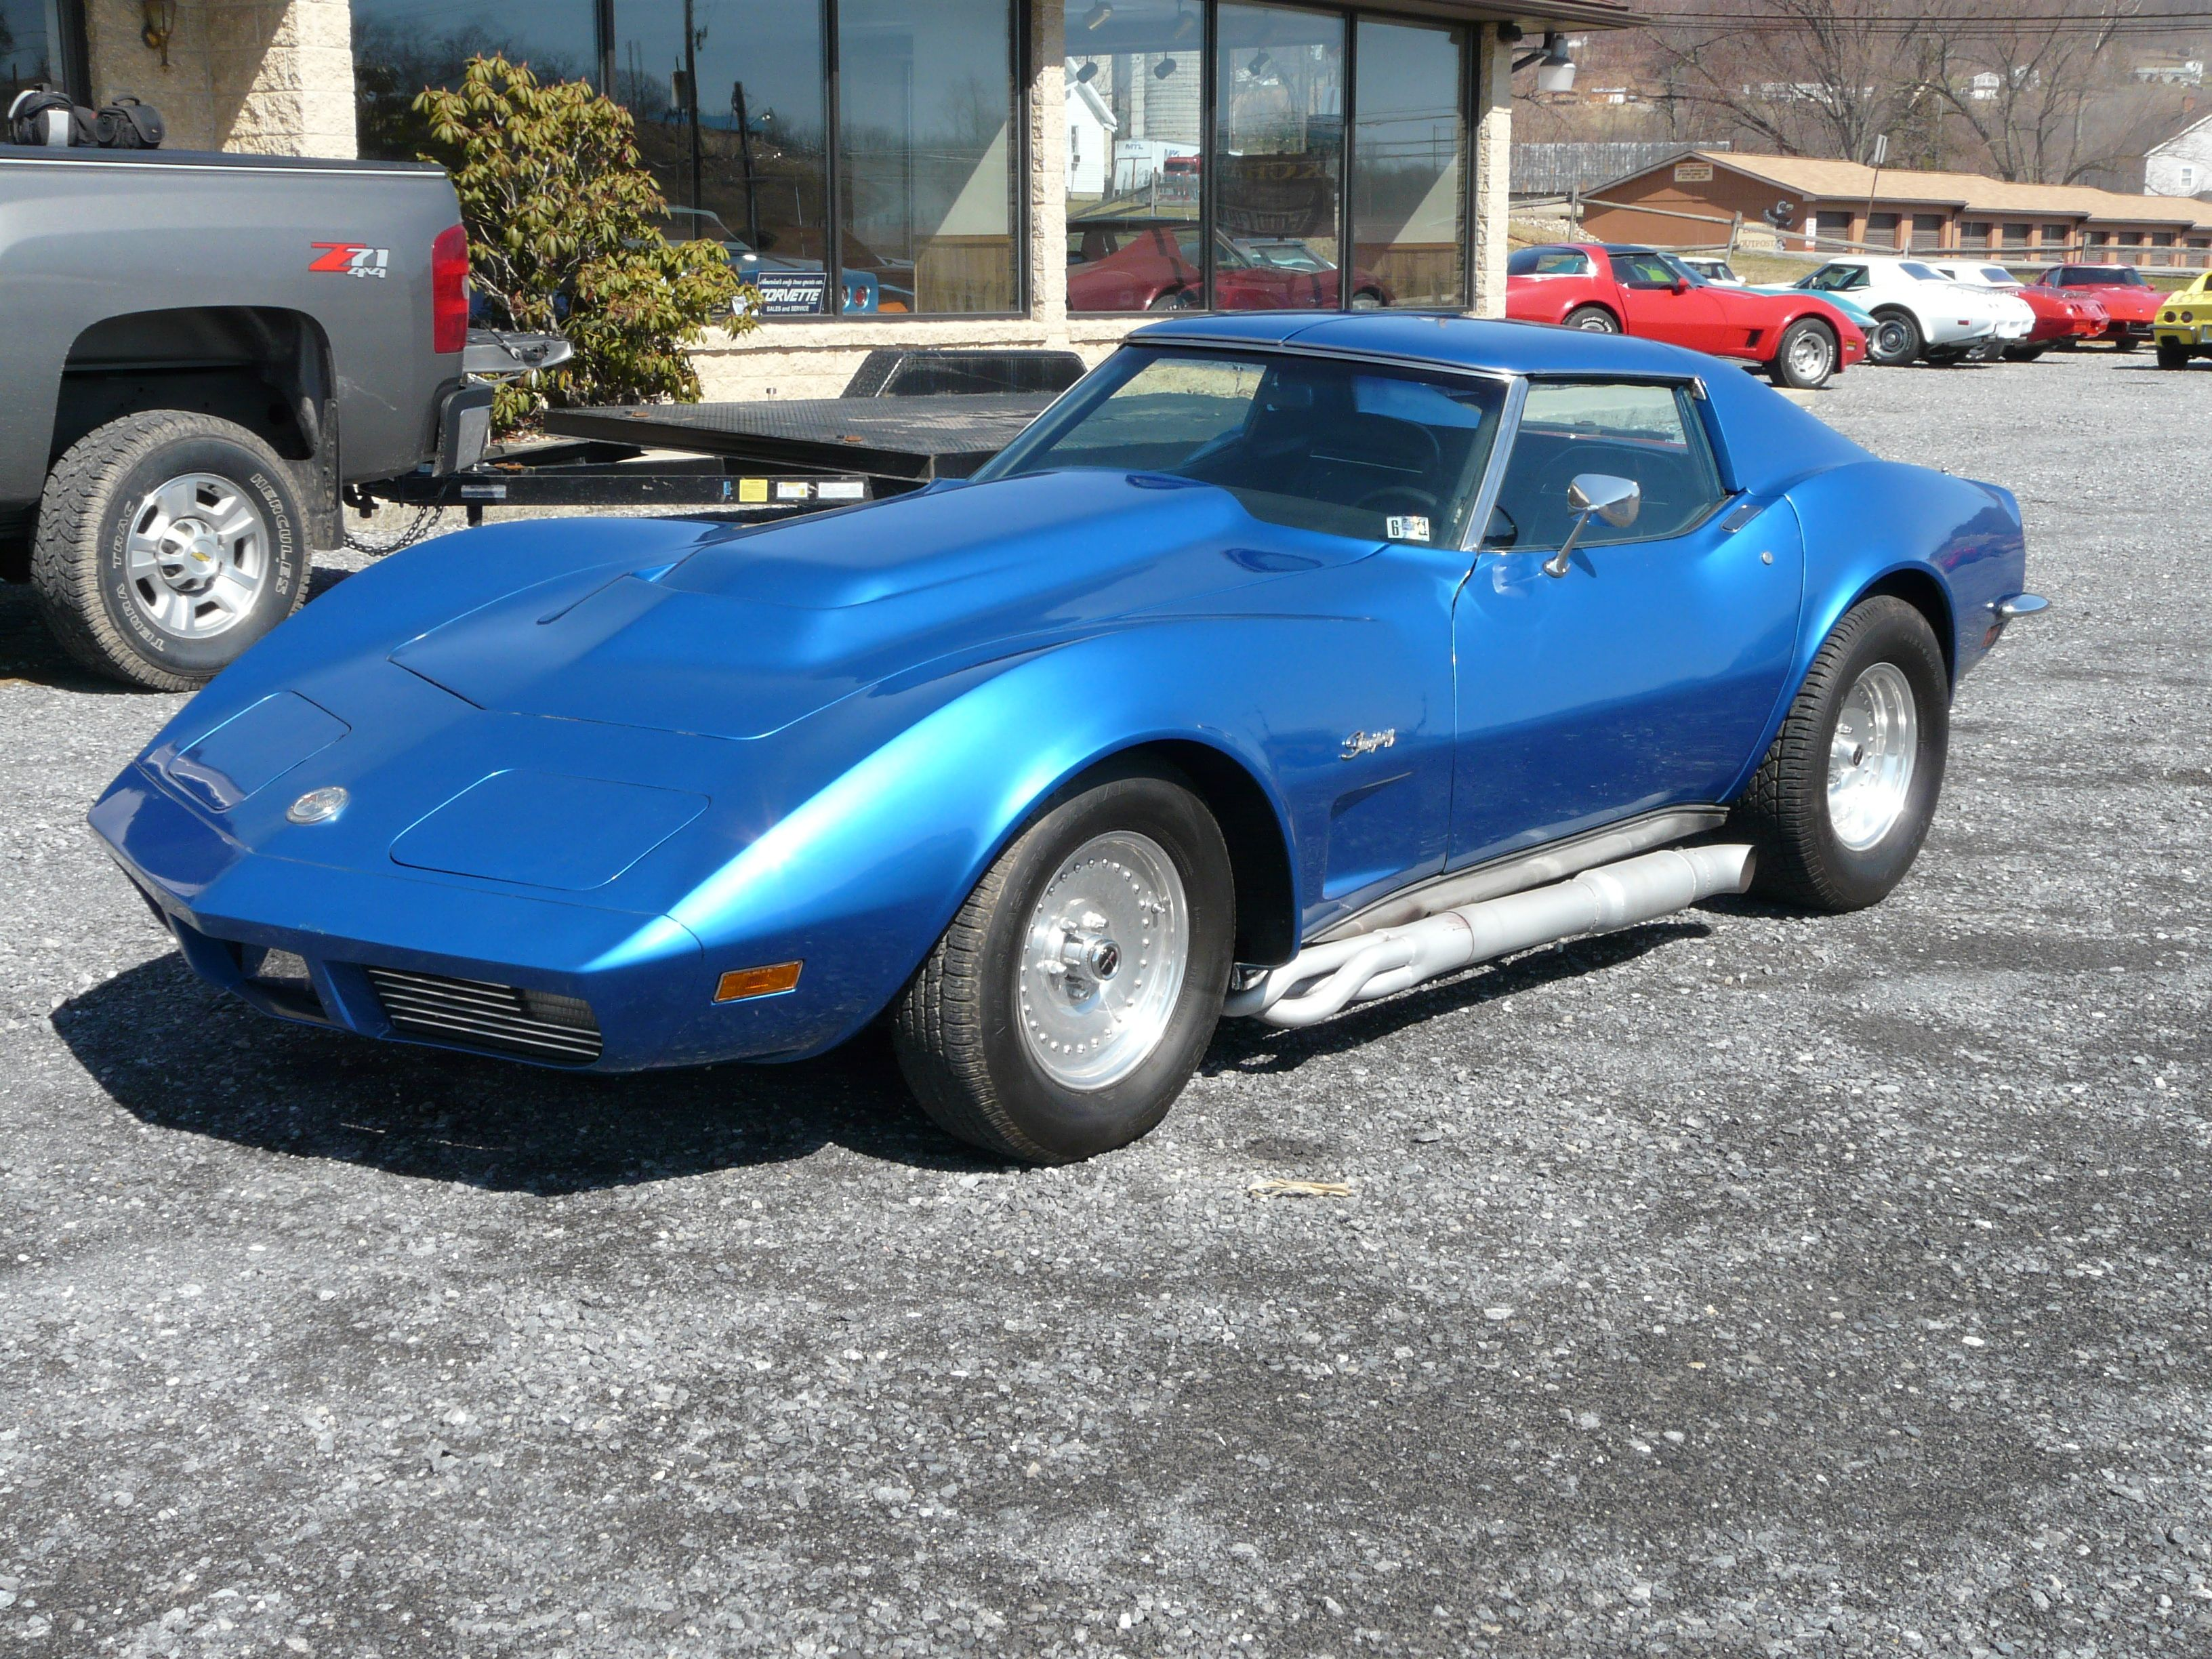 1973 Blue Corvette T Top Stingray Hot Rod -- Classic C3